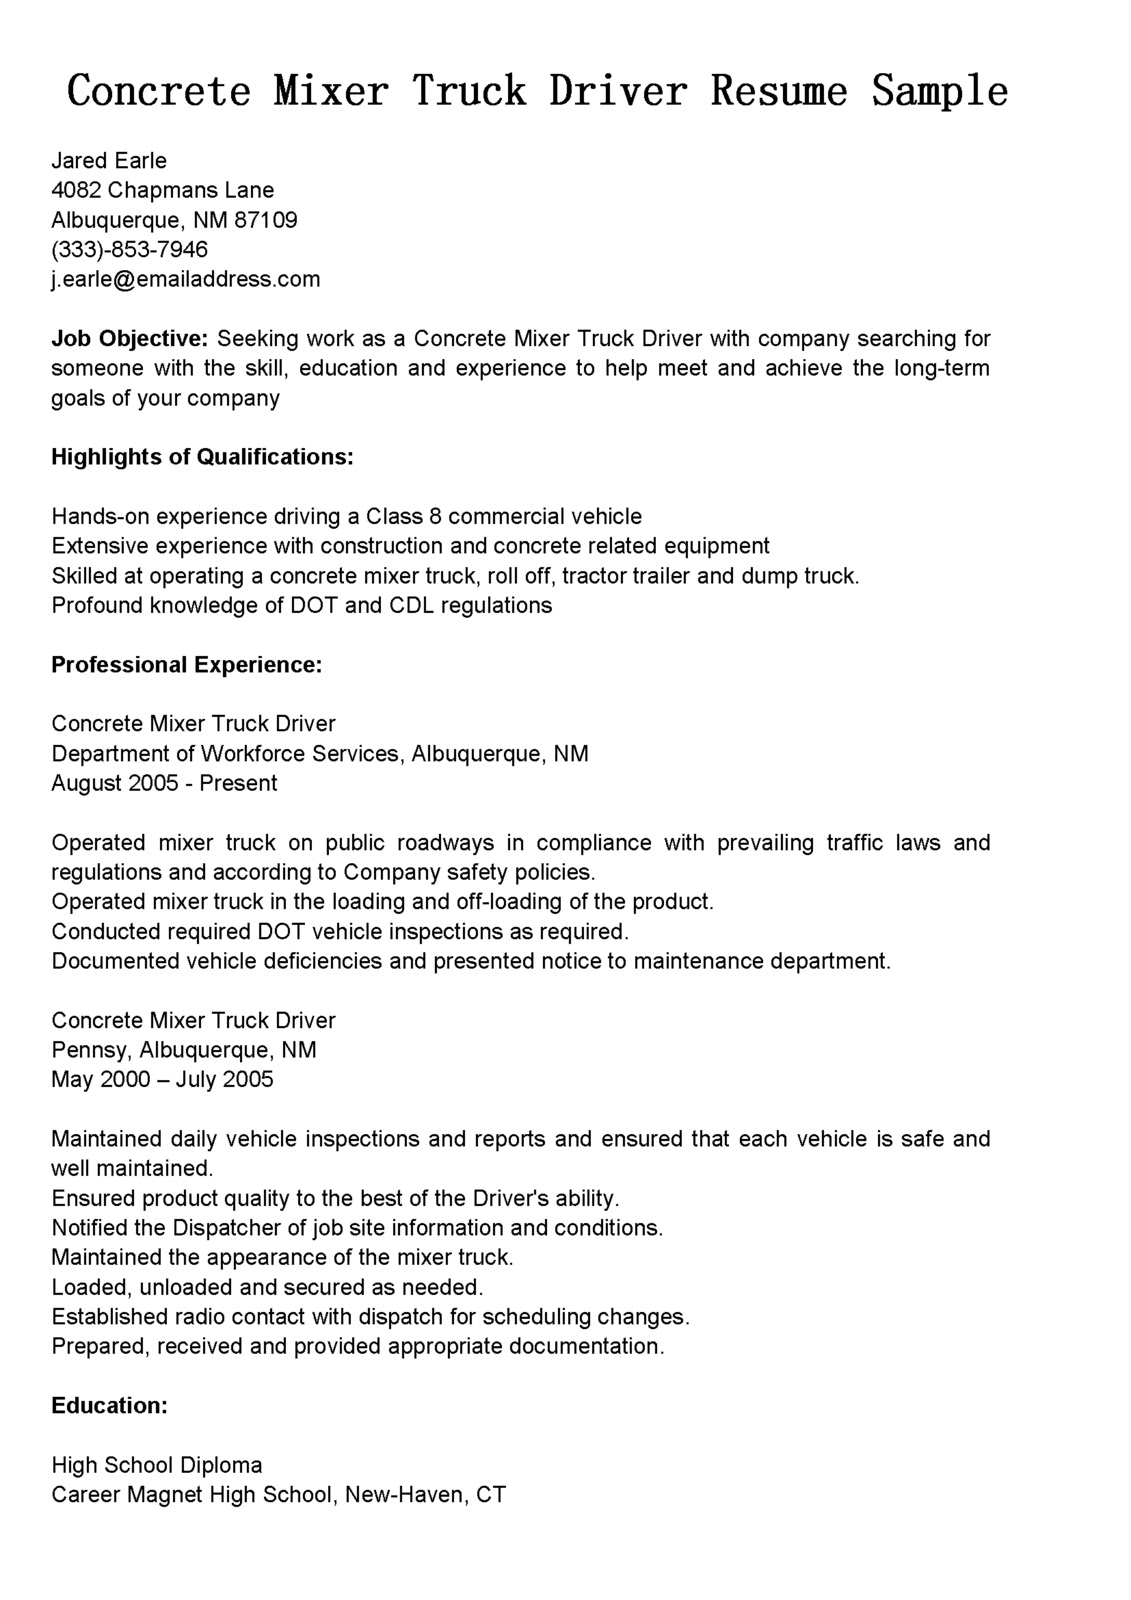 Driver Resumes: Concrete Mixer Truck Driver Resume Sample